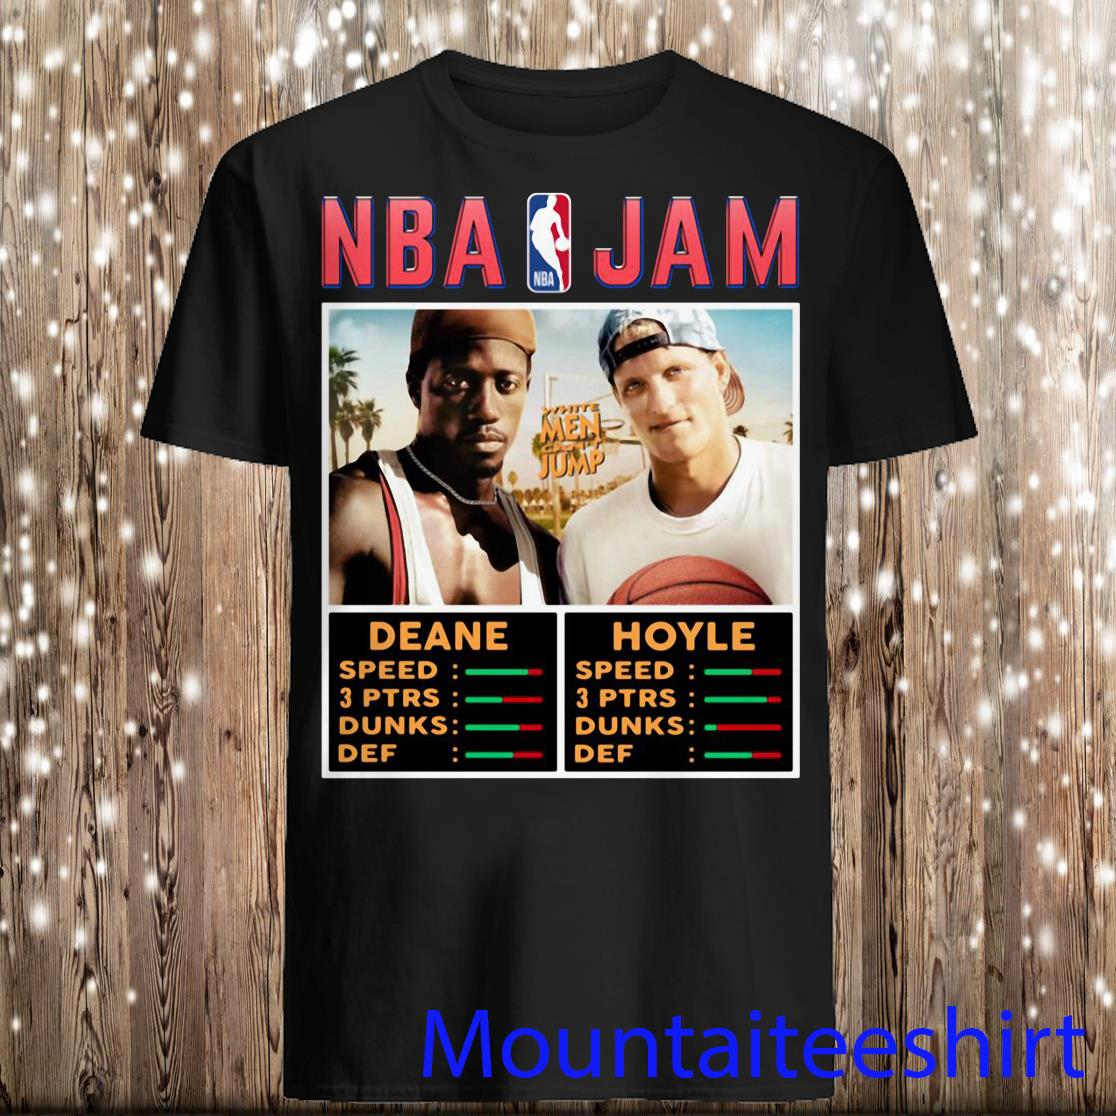 NBA Jam White Men Can't Jump Shirt